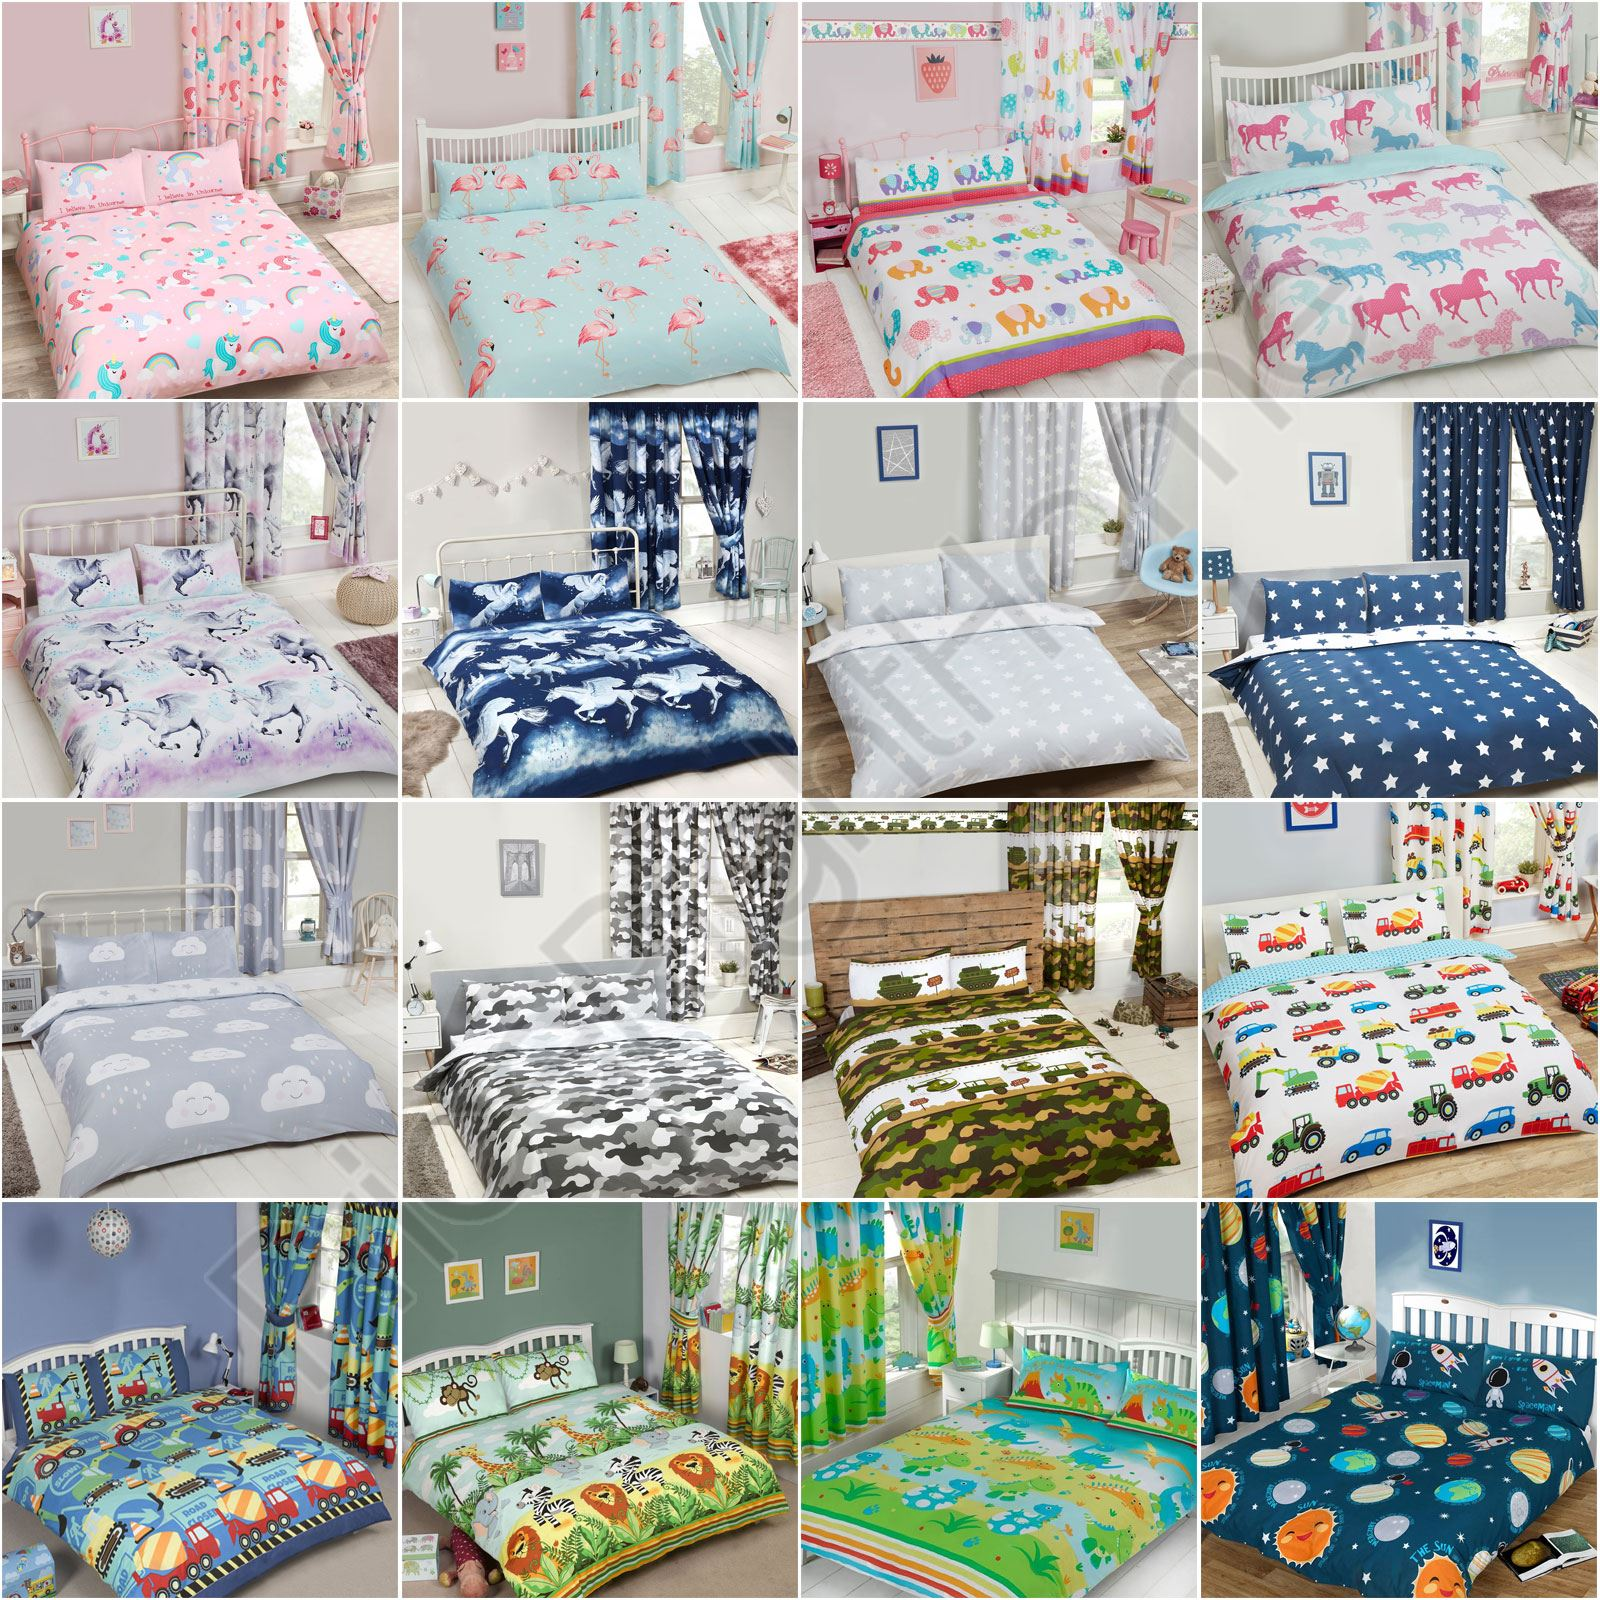 Boys Double Quilt Cover Details About Exclusive Double Duvet Cover Sets Kids Bedding Boys Girls Unicorn Stars Dino